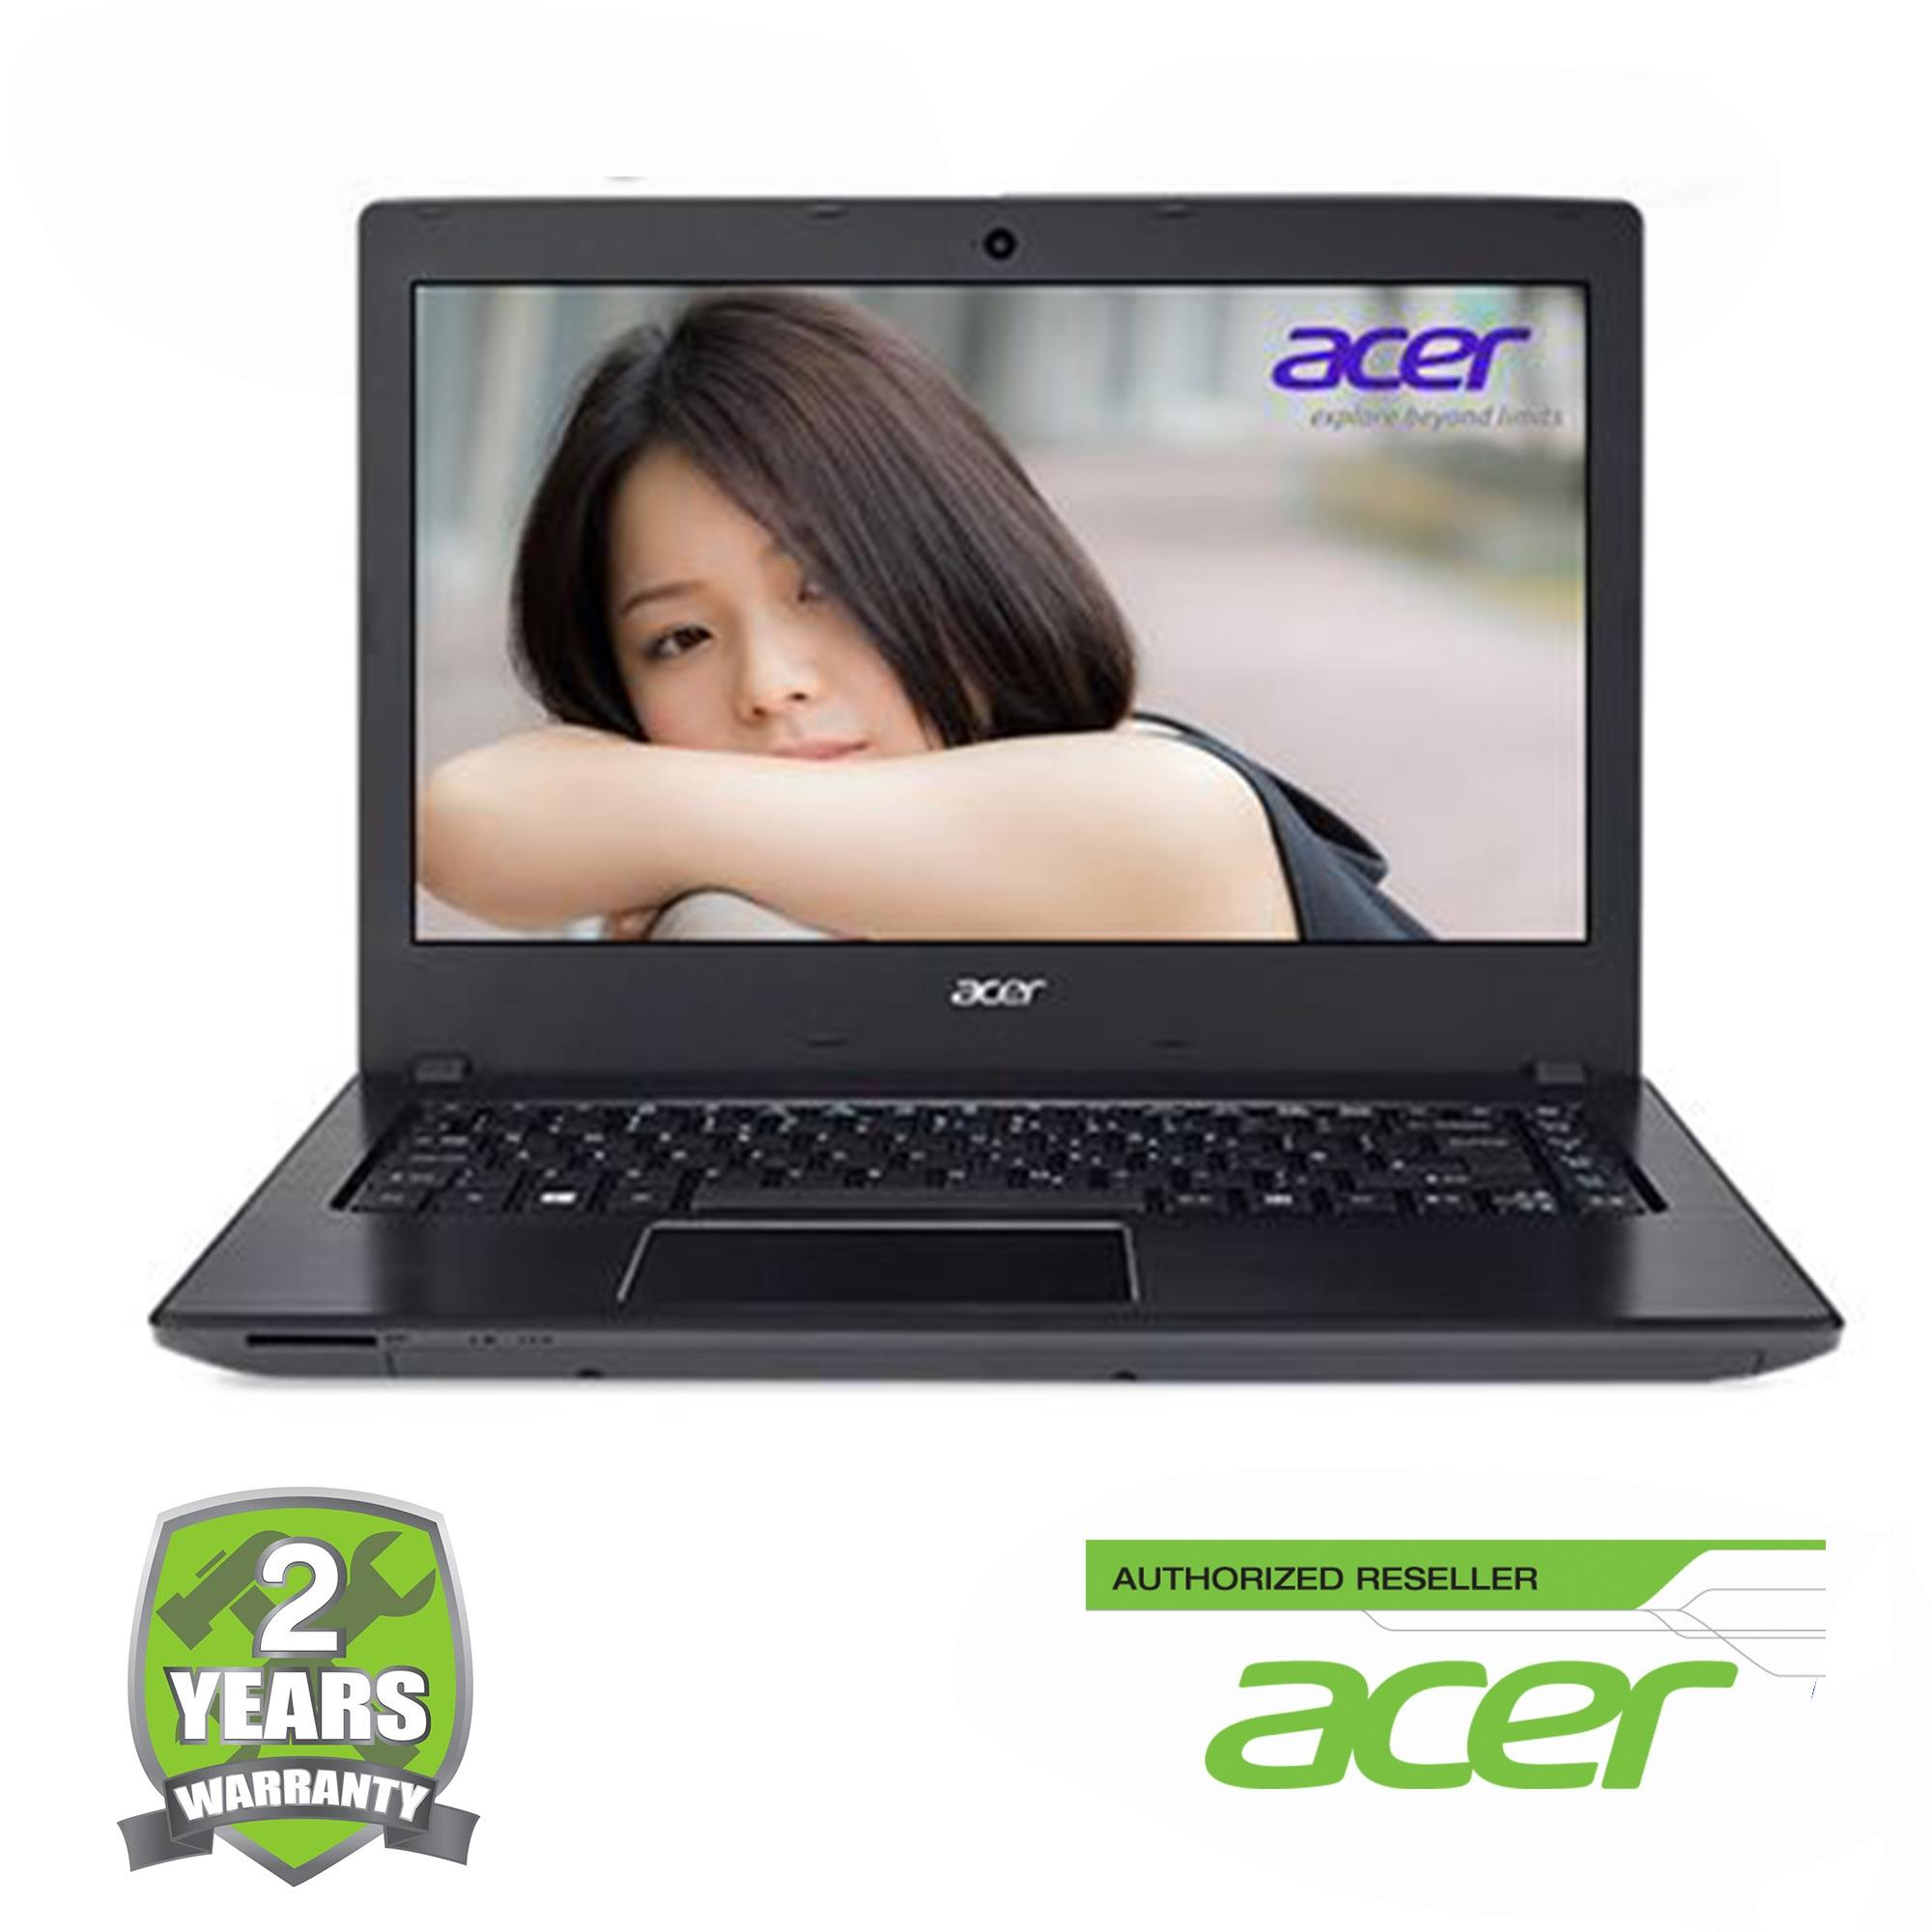 Acer Aspire 1830 TimelineX Notebook Realtek Card Reader Driver for PC